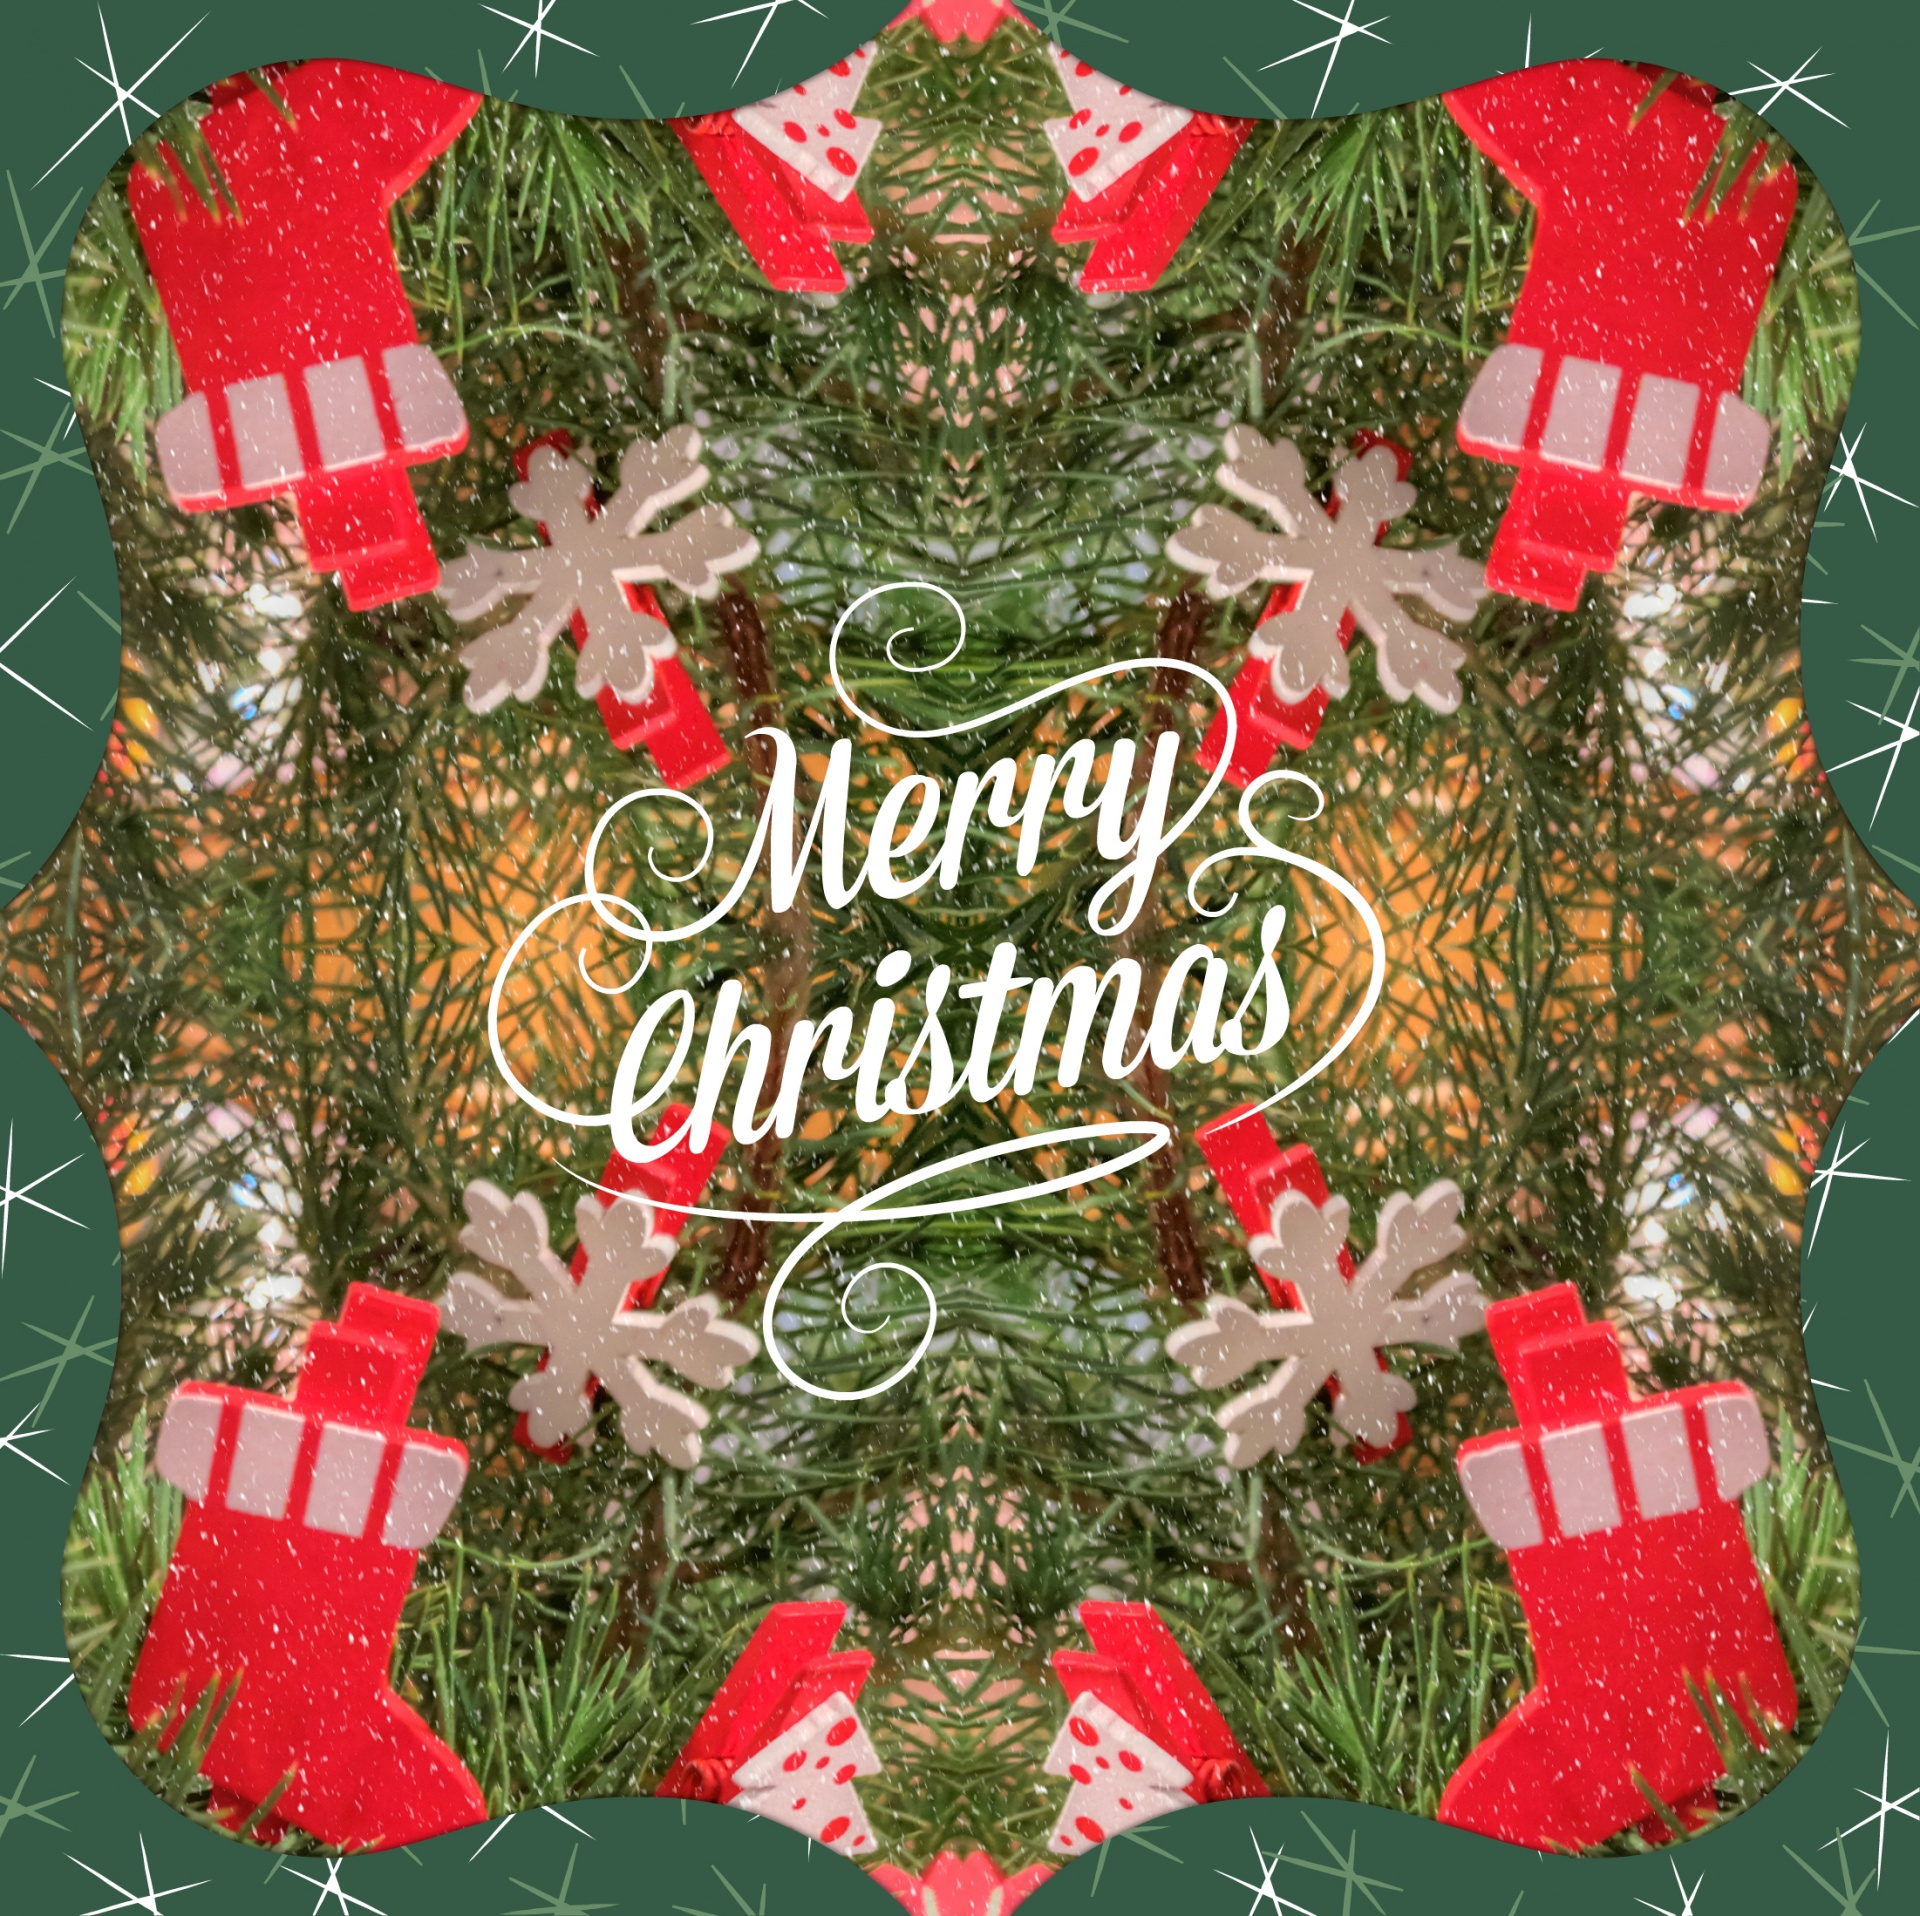 Christmas Kaleidoscope Cutout Free Stock Photo - Public Domain Pictures